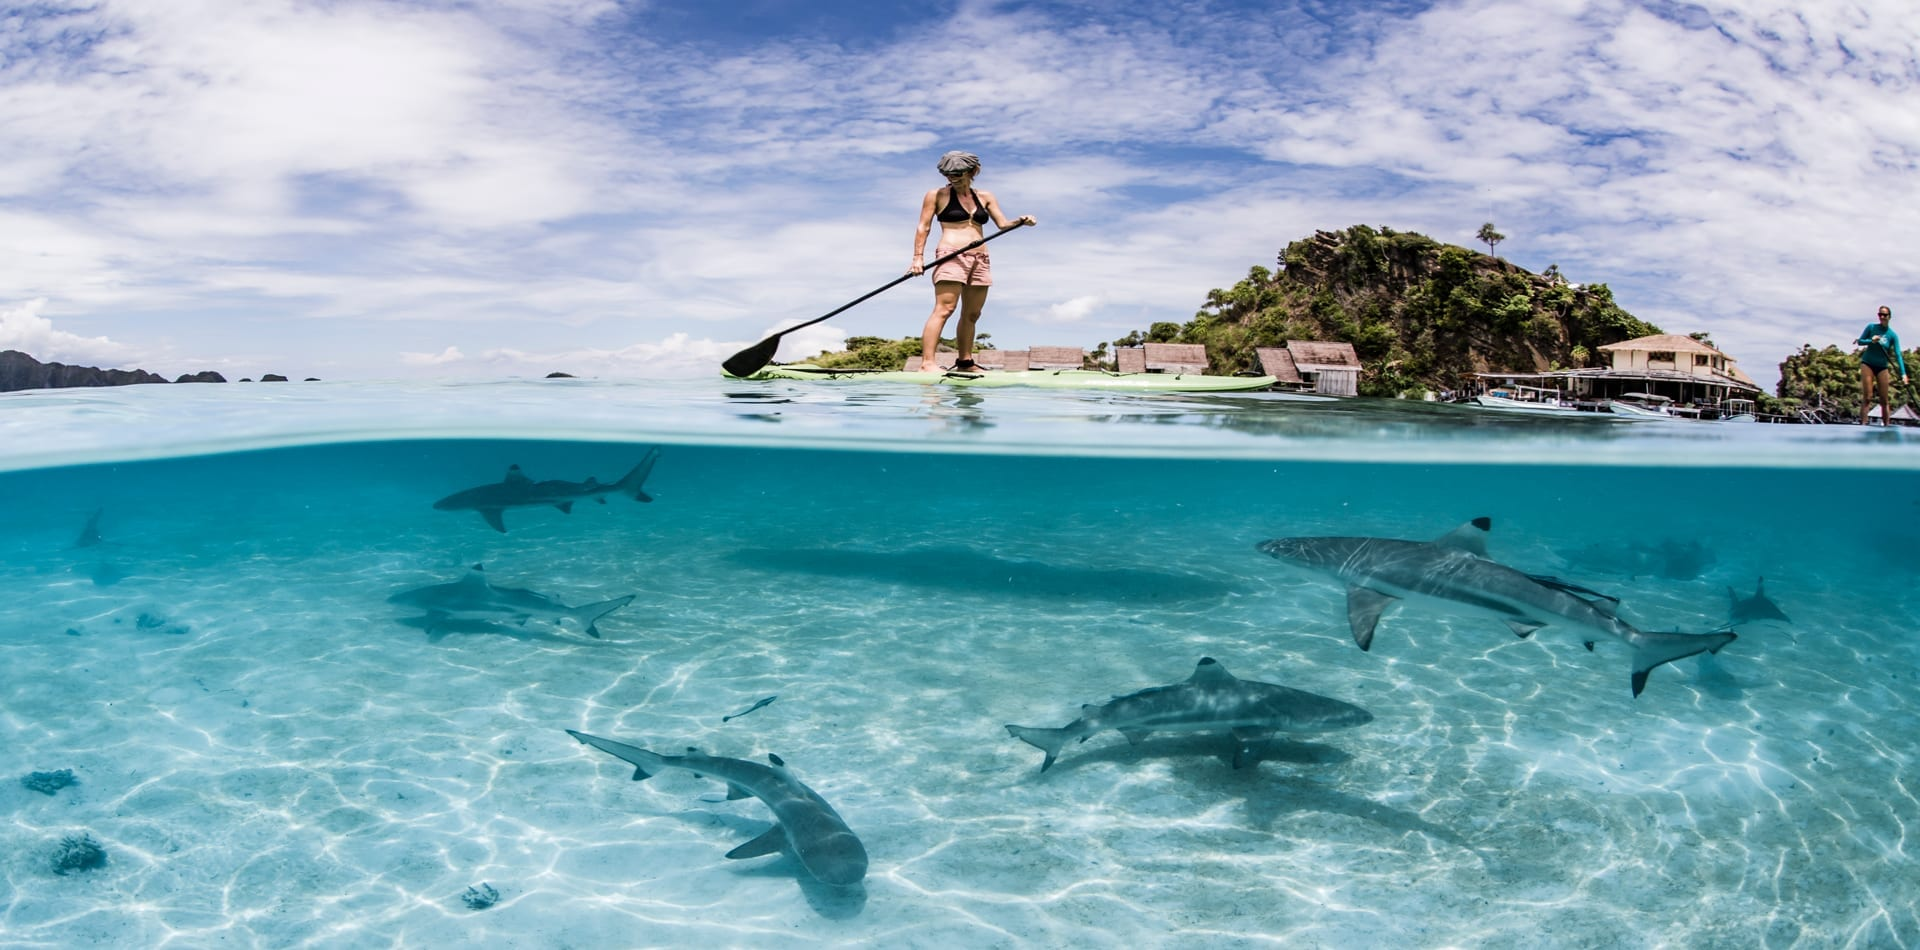 Paddle boarding with sharks Misool Indonesia hero image